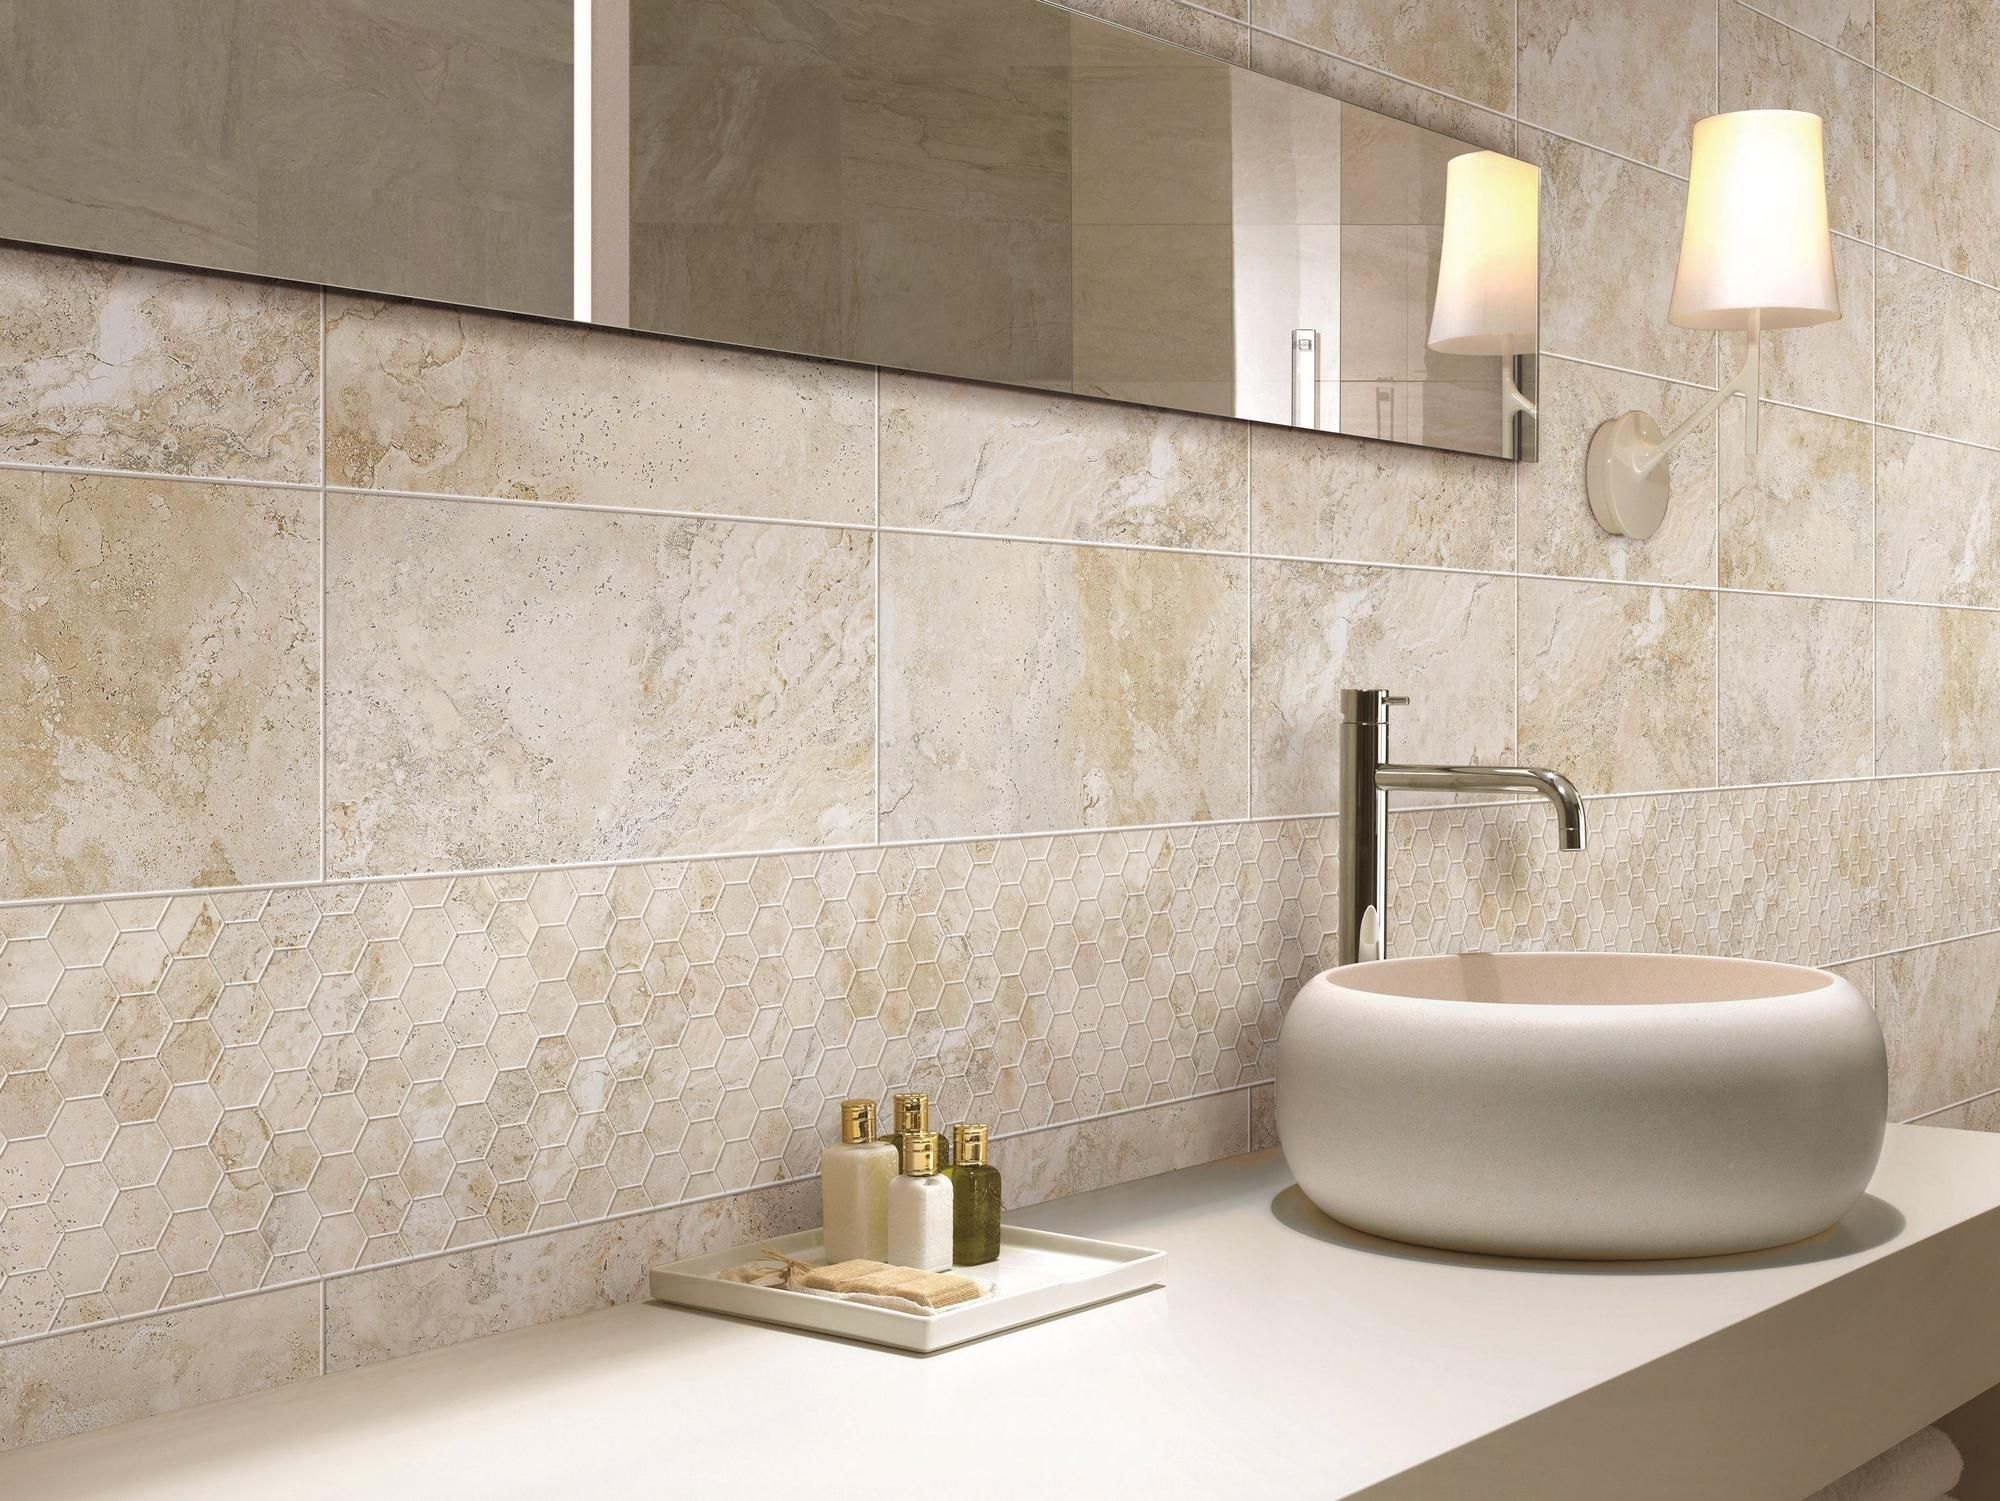 Tarsus Matte Almond Porcelain Tile | Flooring | Polished ...